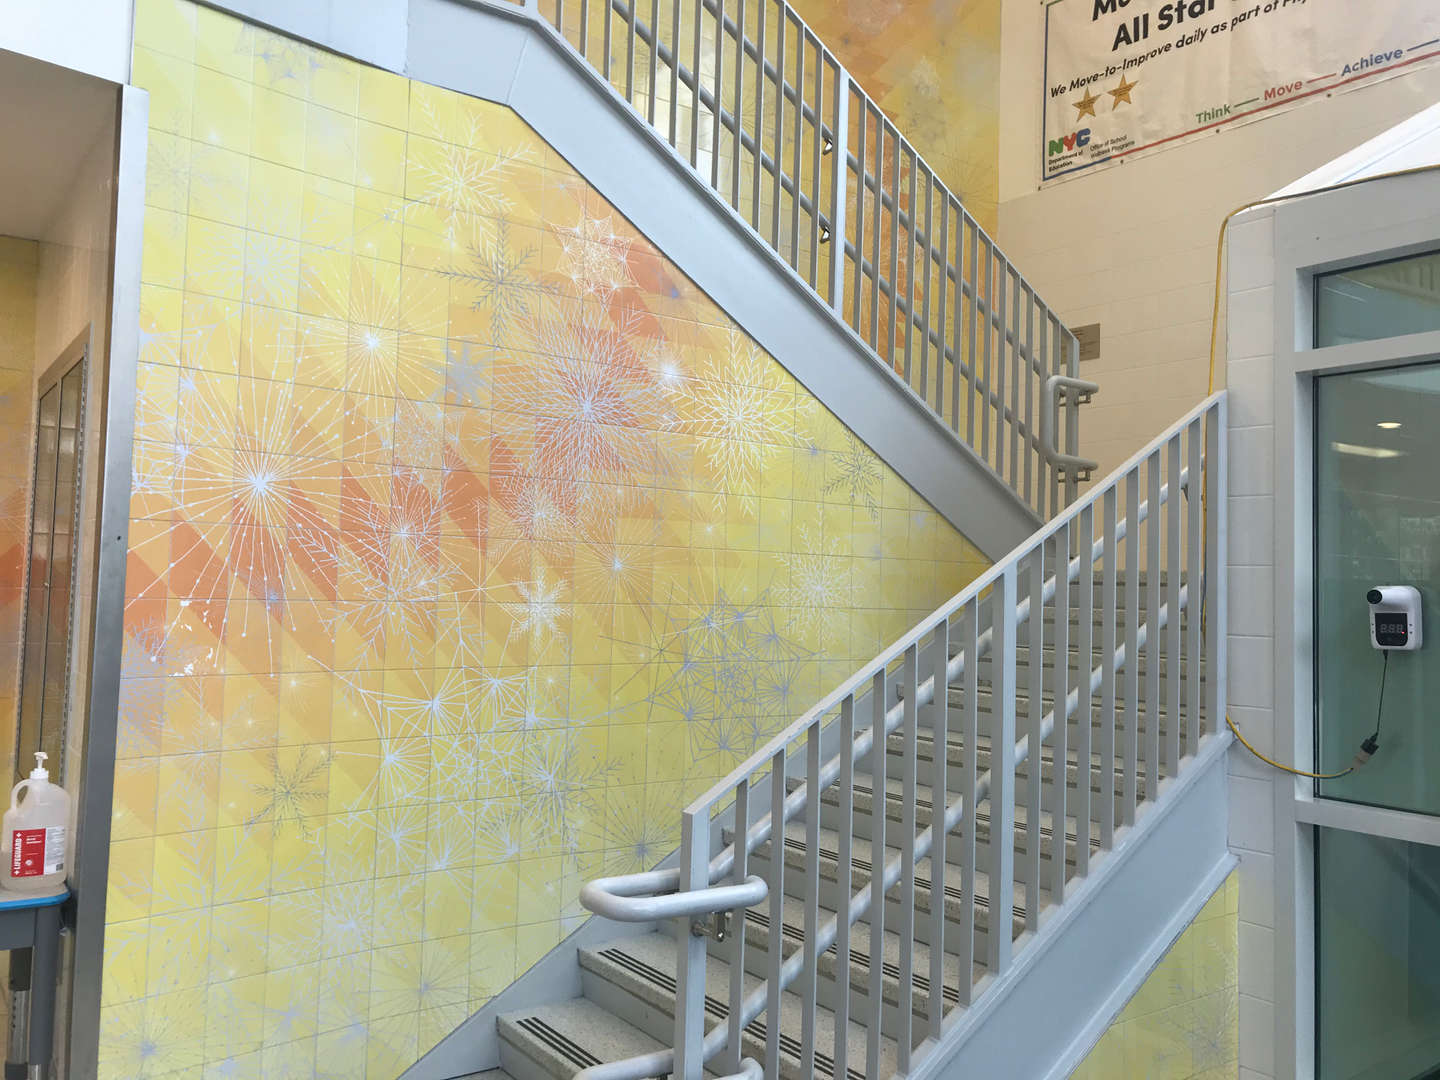 Security lobby staircase leading towards the first floor.